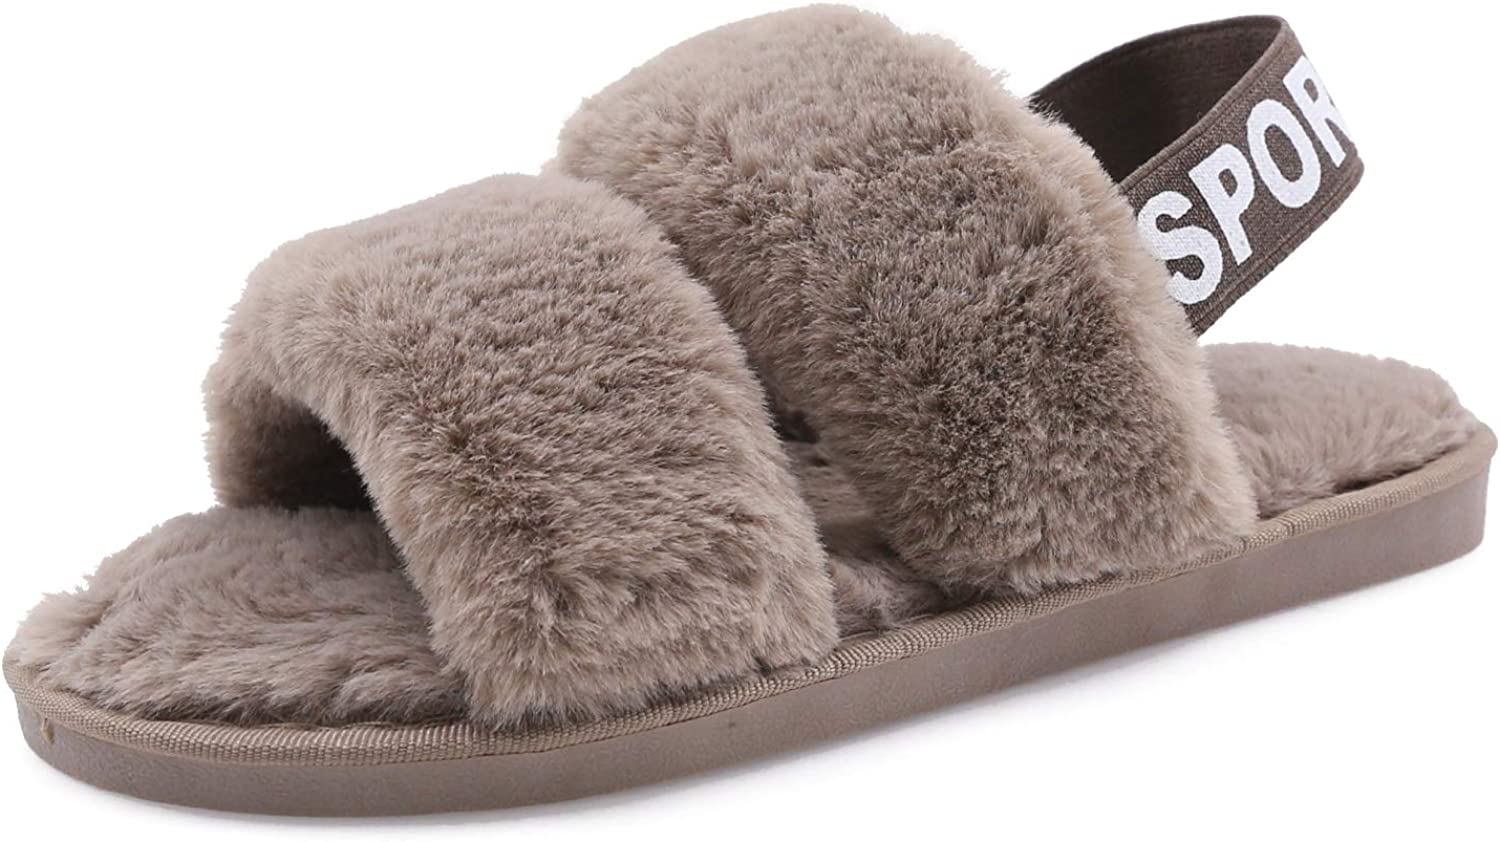 Women's House Fuzzy Slipper Fluffy Sandals Slides Leopard Print Soft Warm Comfy Cozy Bedroom Open Toe House Indoor Outdoor Slippers Sandals with Elastic Strap (Coffee, Numeric_6)